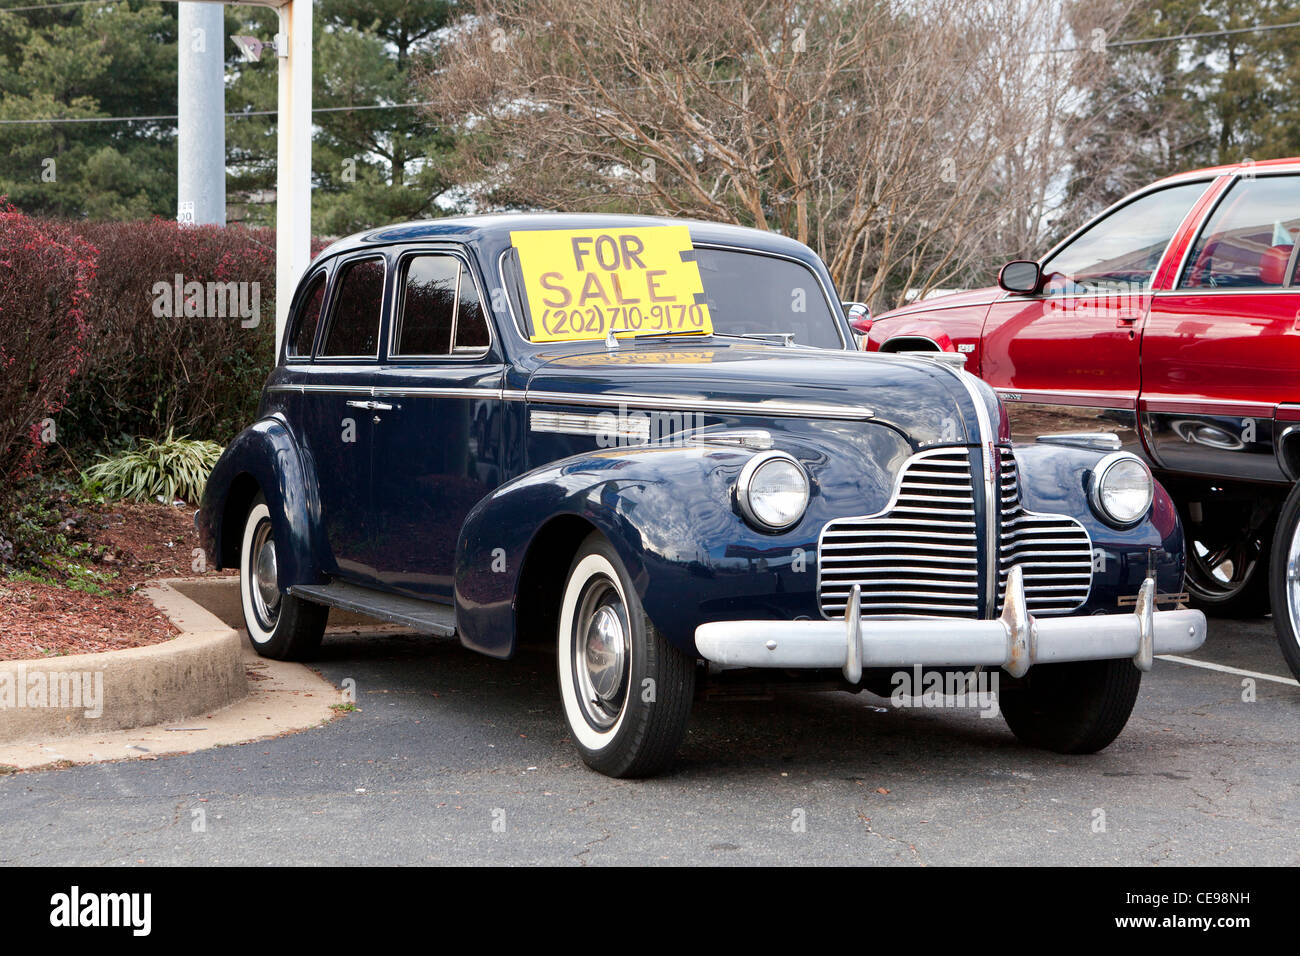 Charming Cars For Sale Usa Ideas - Classic Cars Ideas - boiq.info